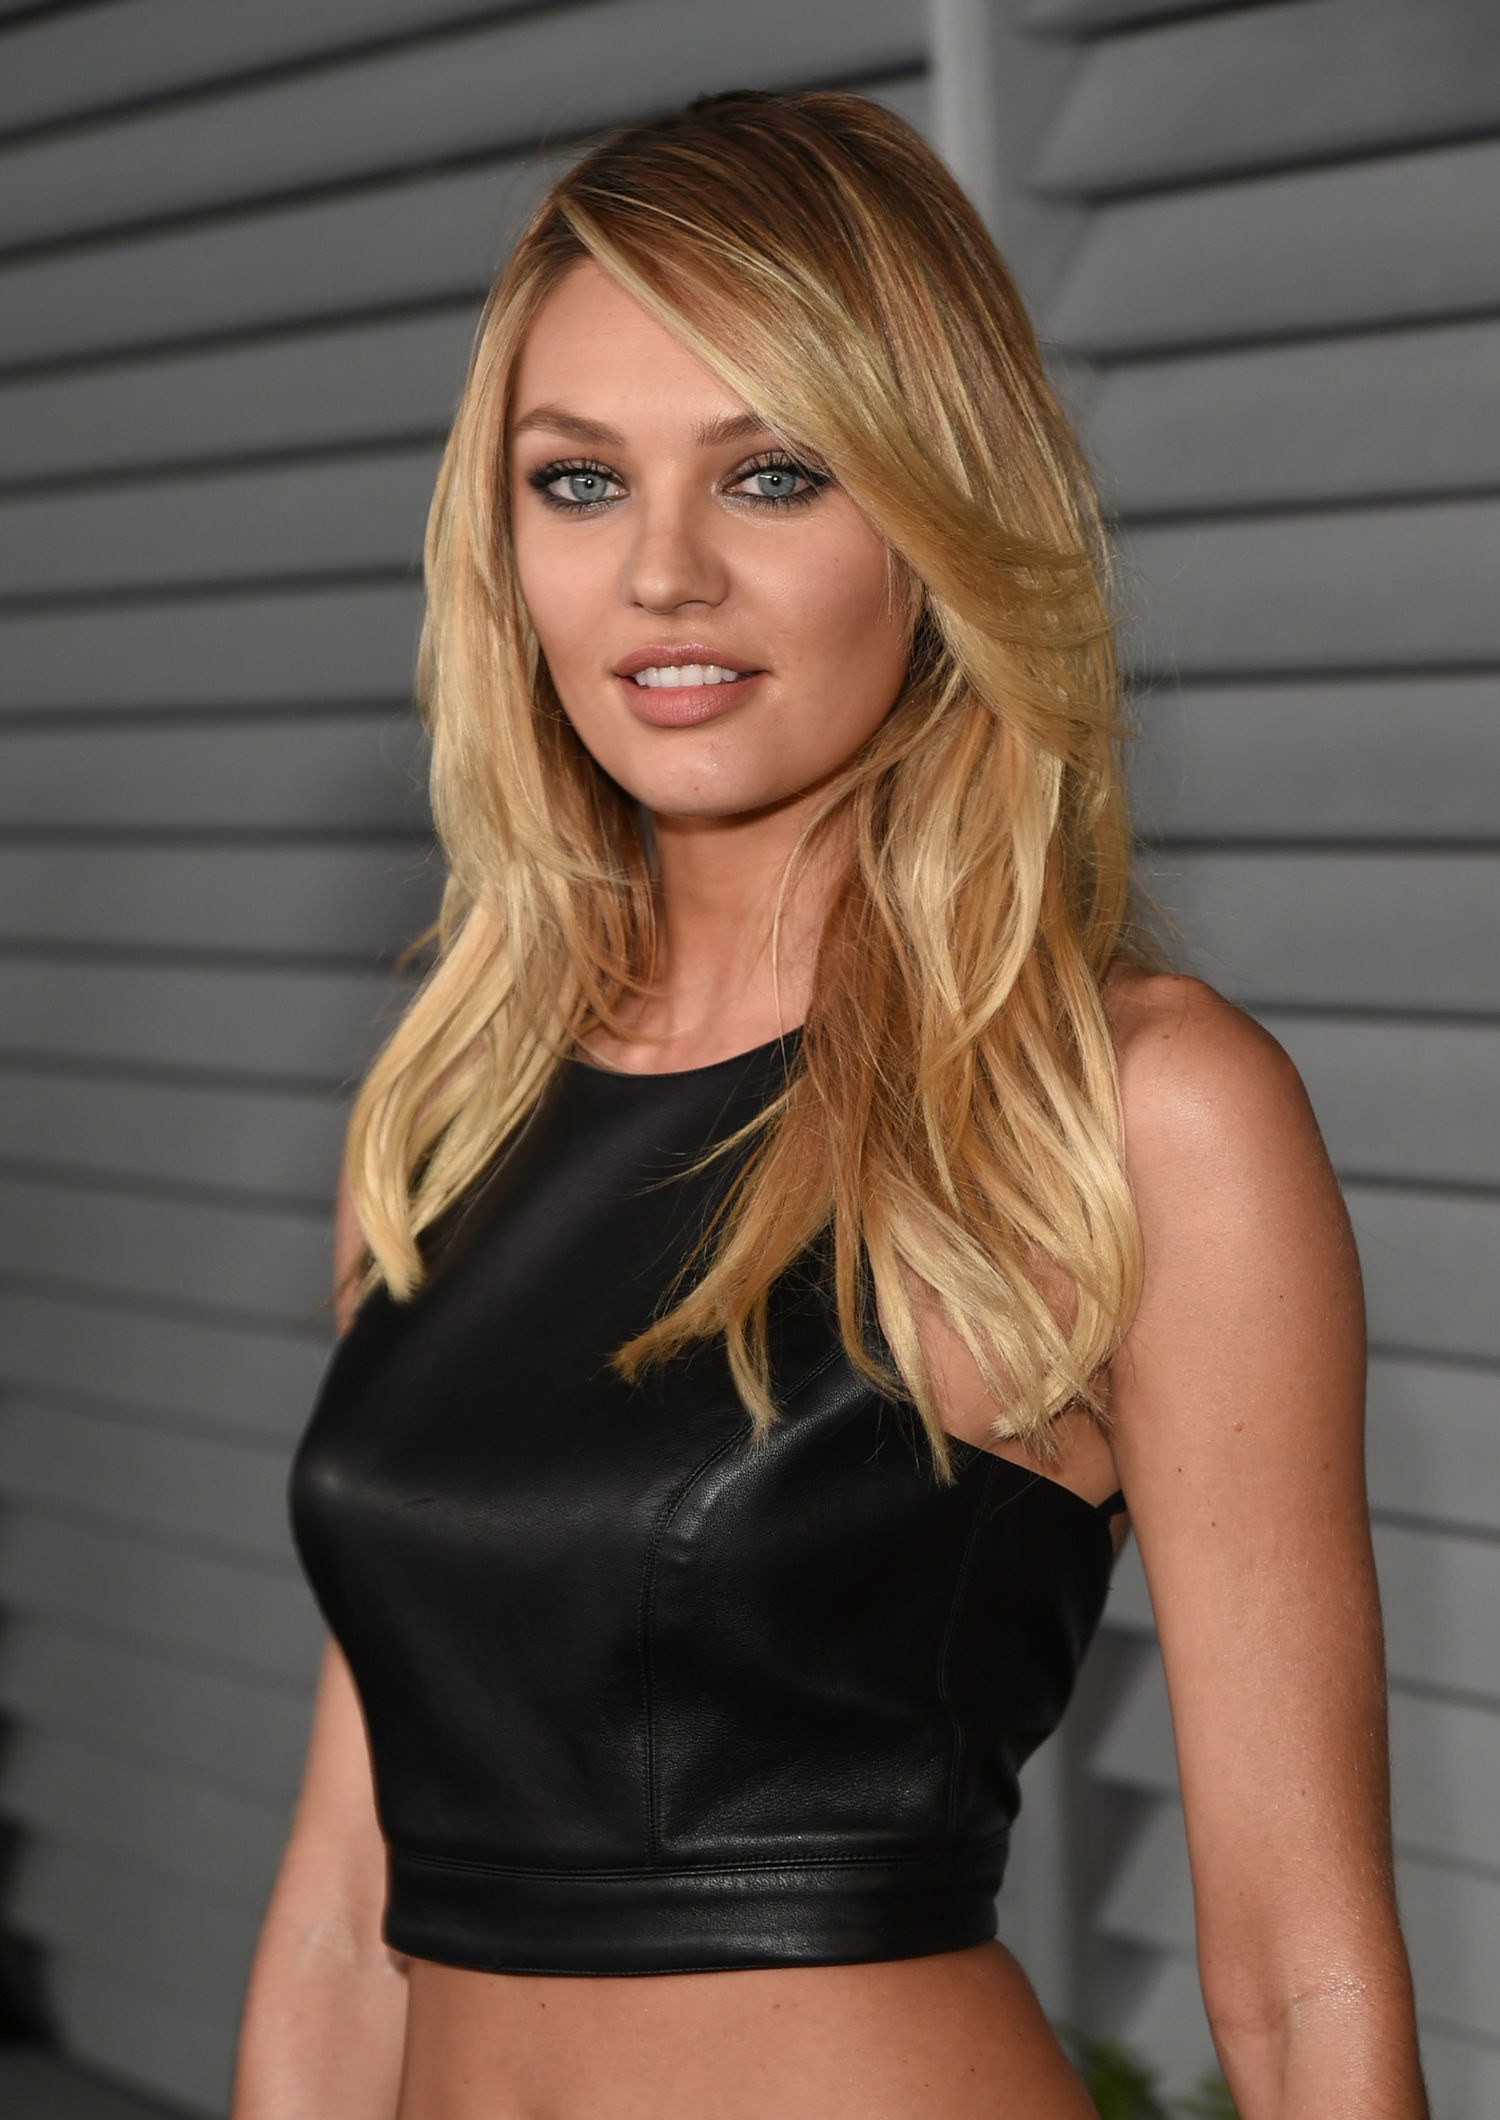 Candice Swanepoel Net Worth, Family, Husband And Biography 3